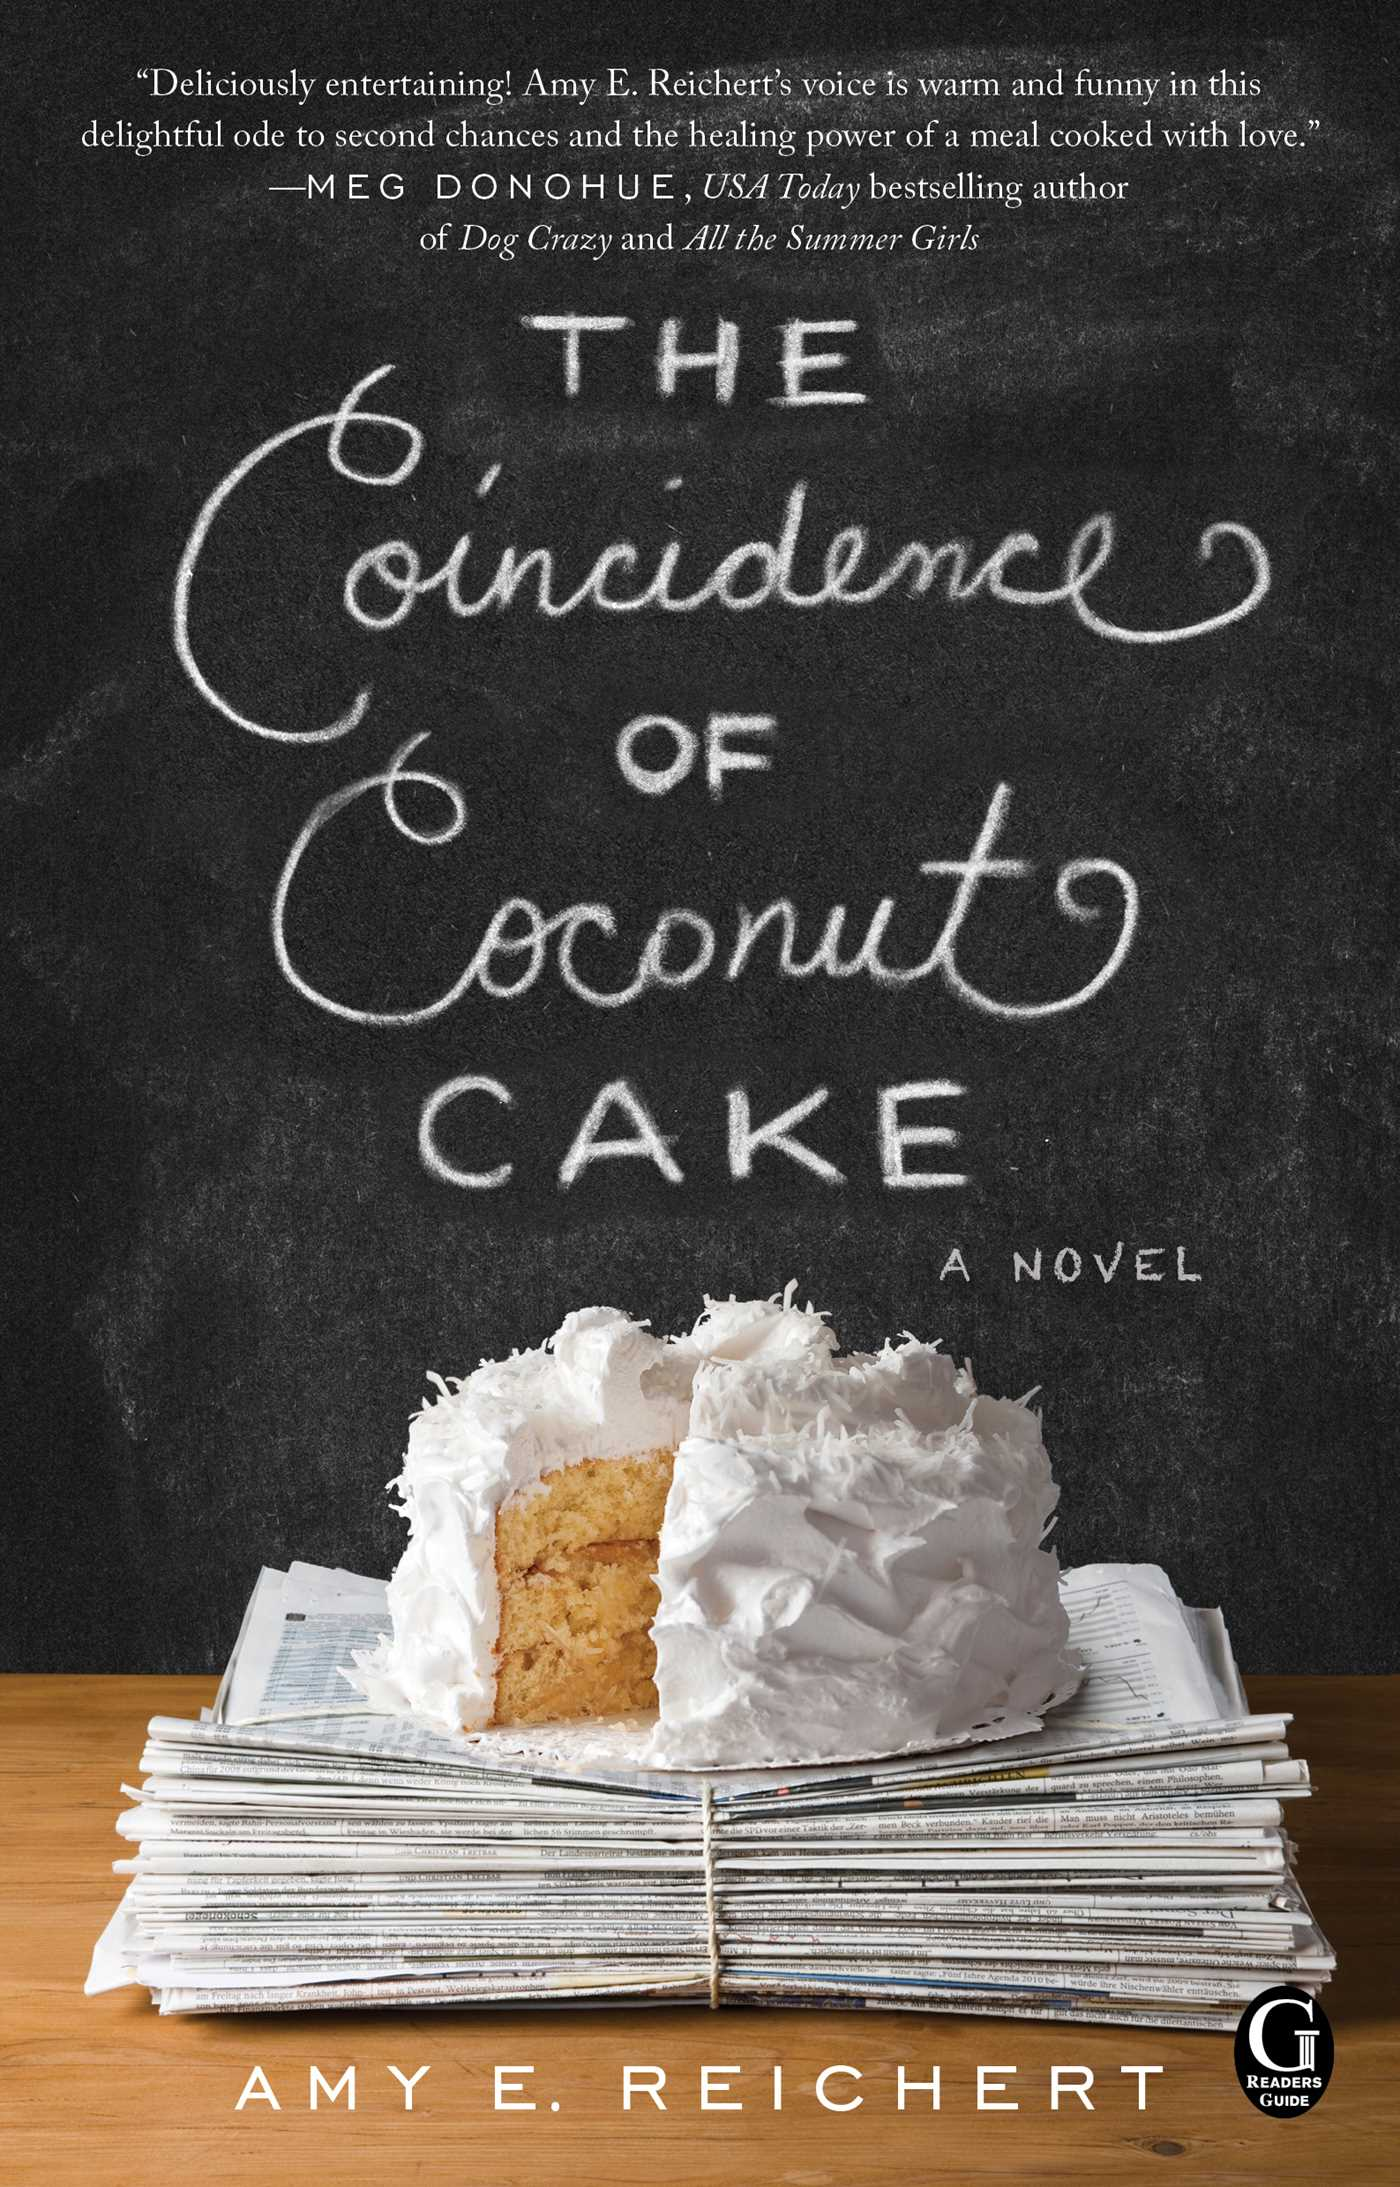 the-coincidence-of-coconut-cake-9781501100710_hr.jpg (1400×2187)